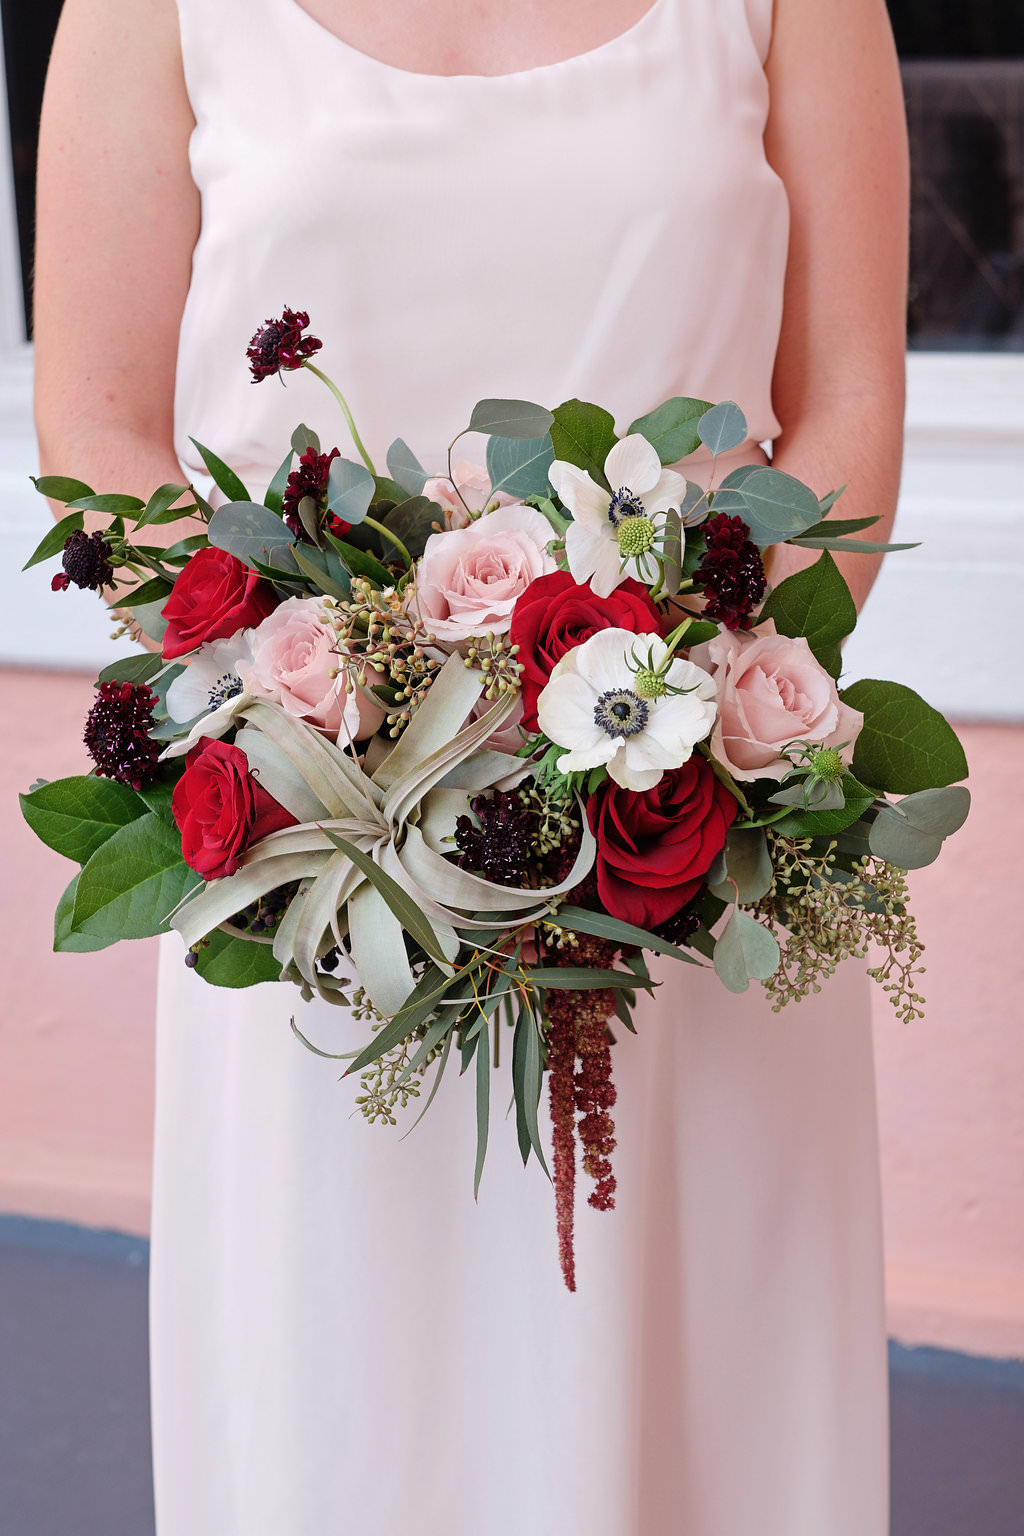 Outdoor Bridesmaid Portrait with Red and Pink Rose, Anemone, and Burgundy Floral with Greenery Bouquet | St Pete Wedding Photographer Marc Edwards Photography